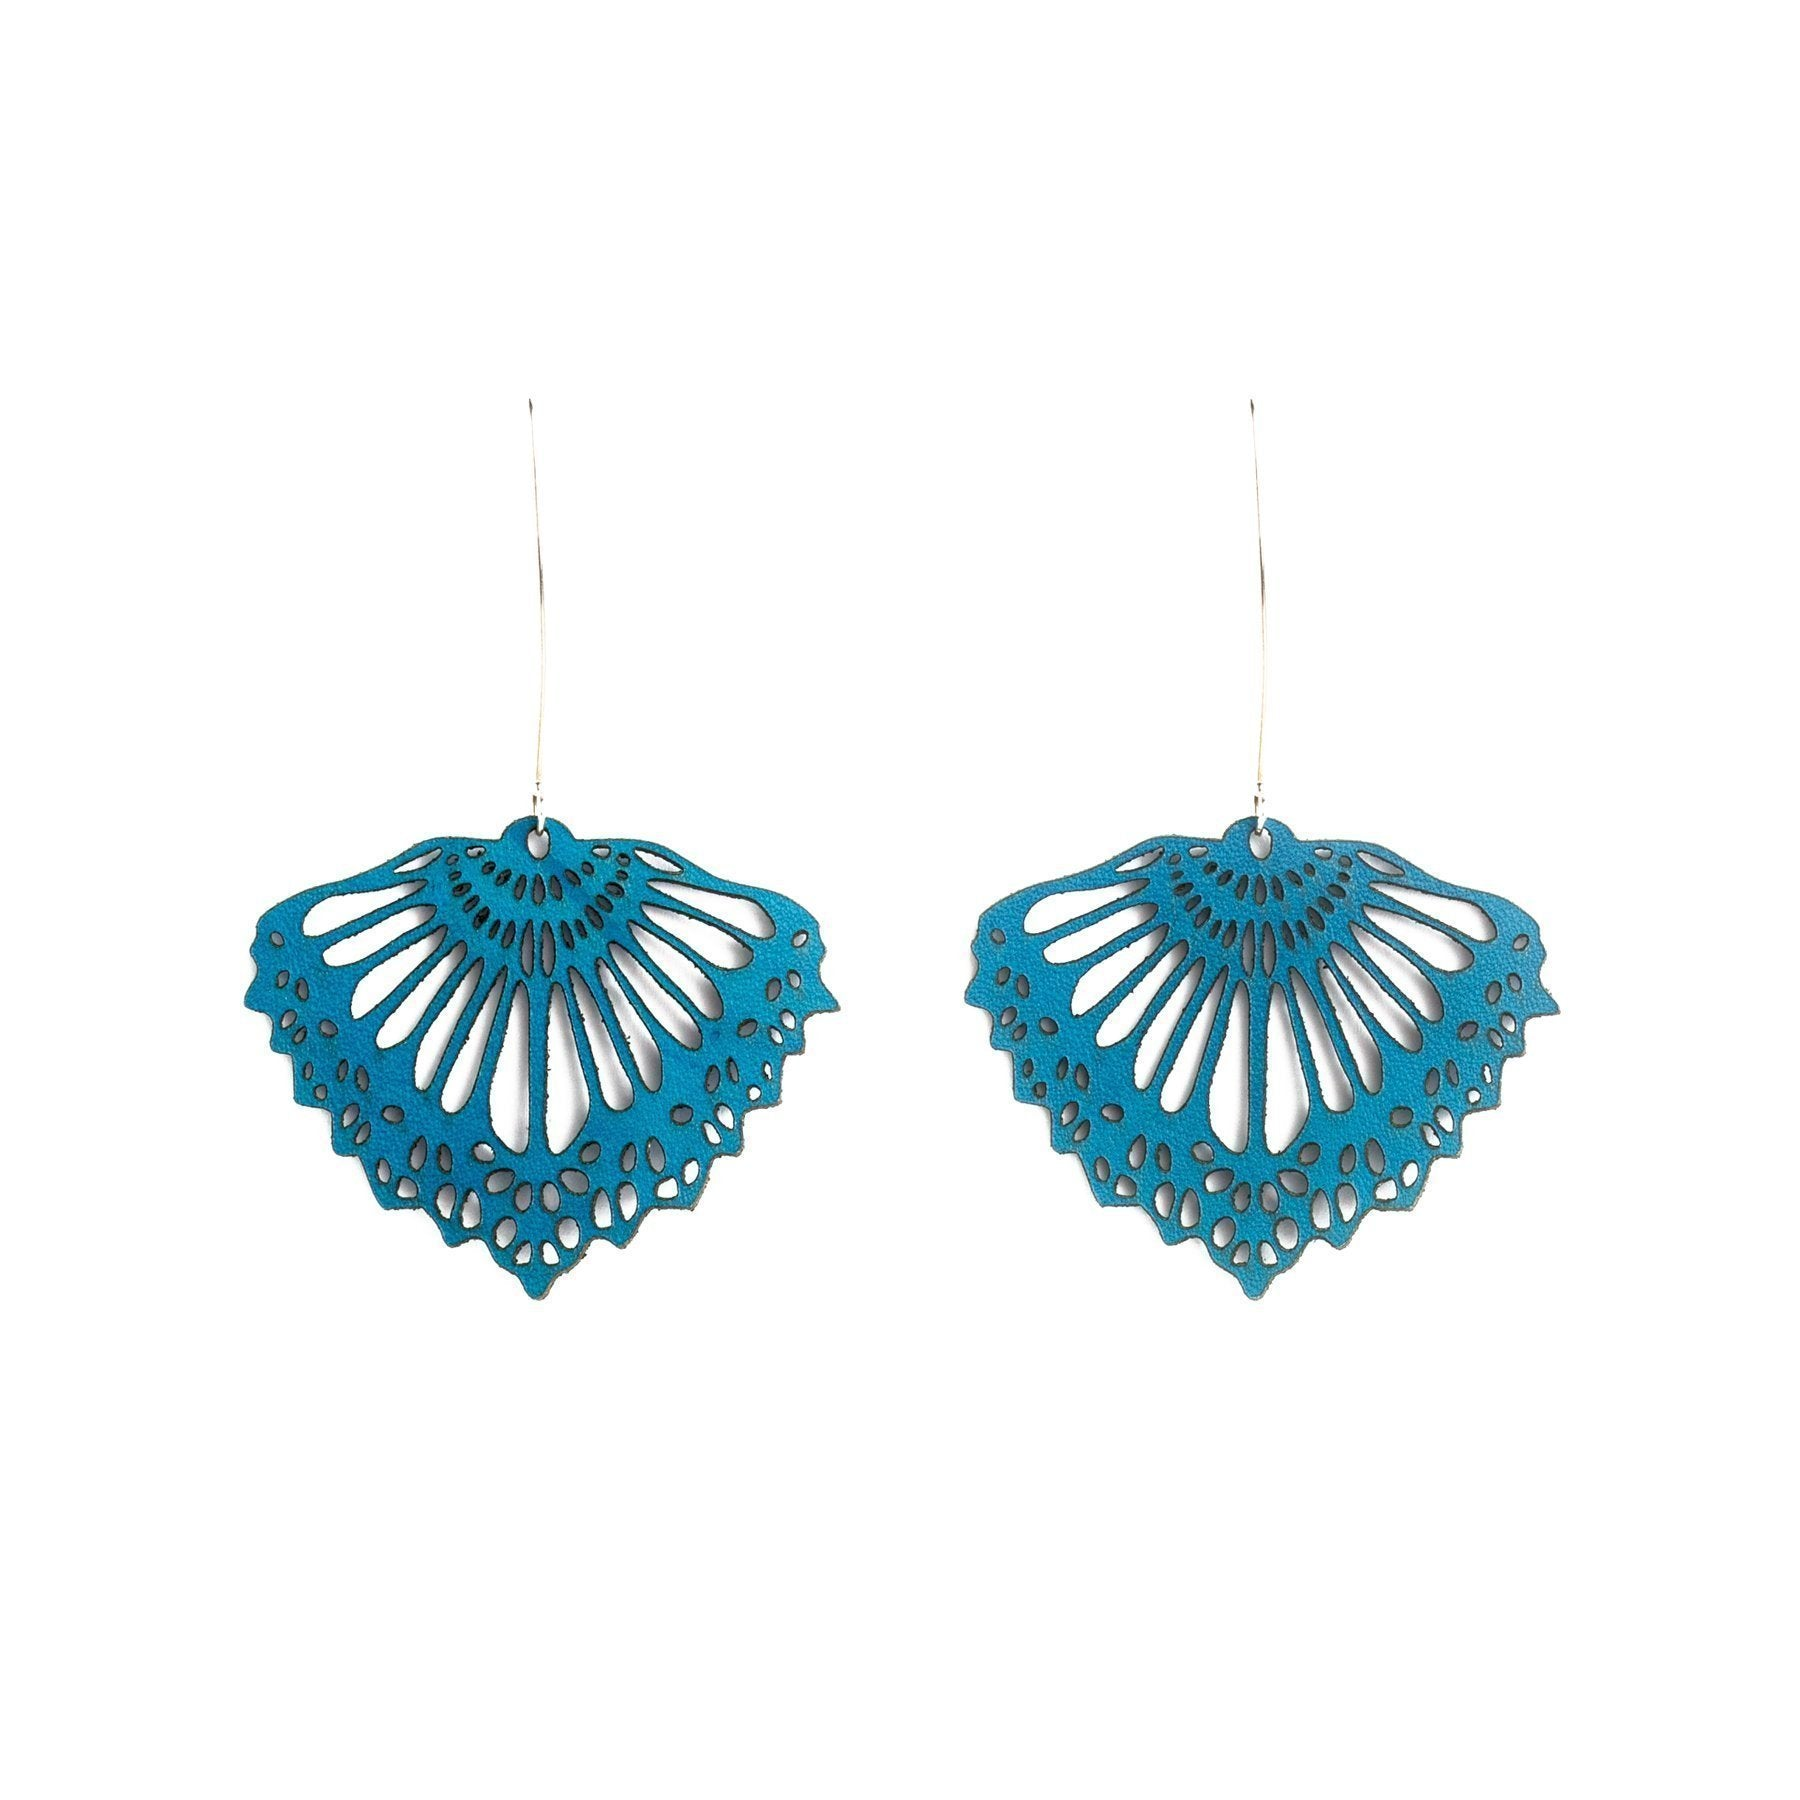 FAN LEATHER EARRINGS TEAL BY WHITE RABBIT DAYS JEWELRY. Laser cut from leather & hung on elegant sterling silver hooks. Subtly coloured, they transition effortlessly between day & night.